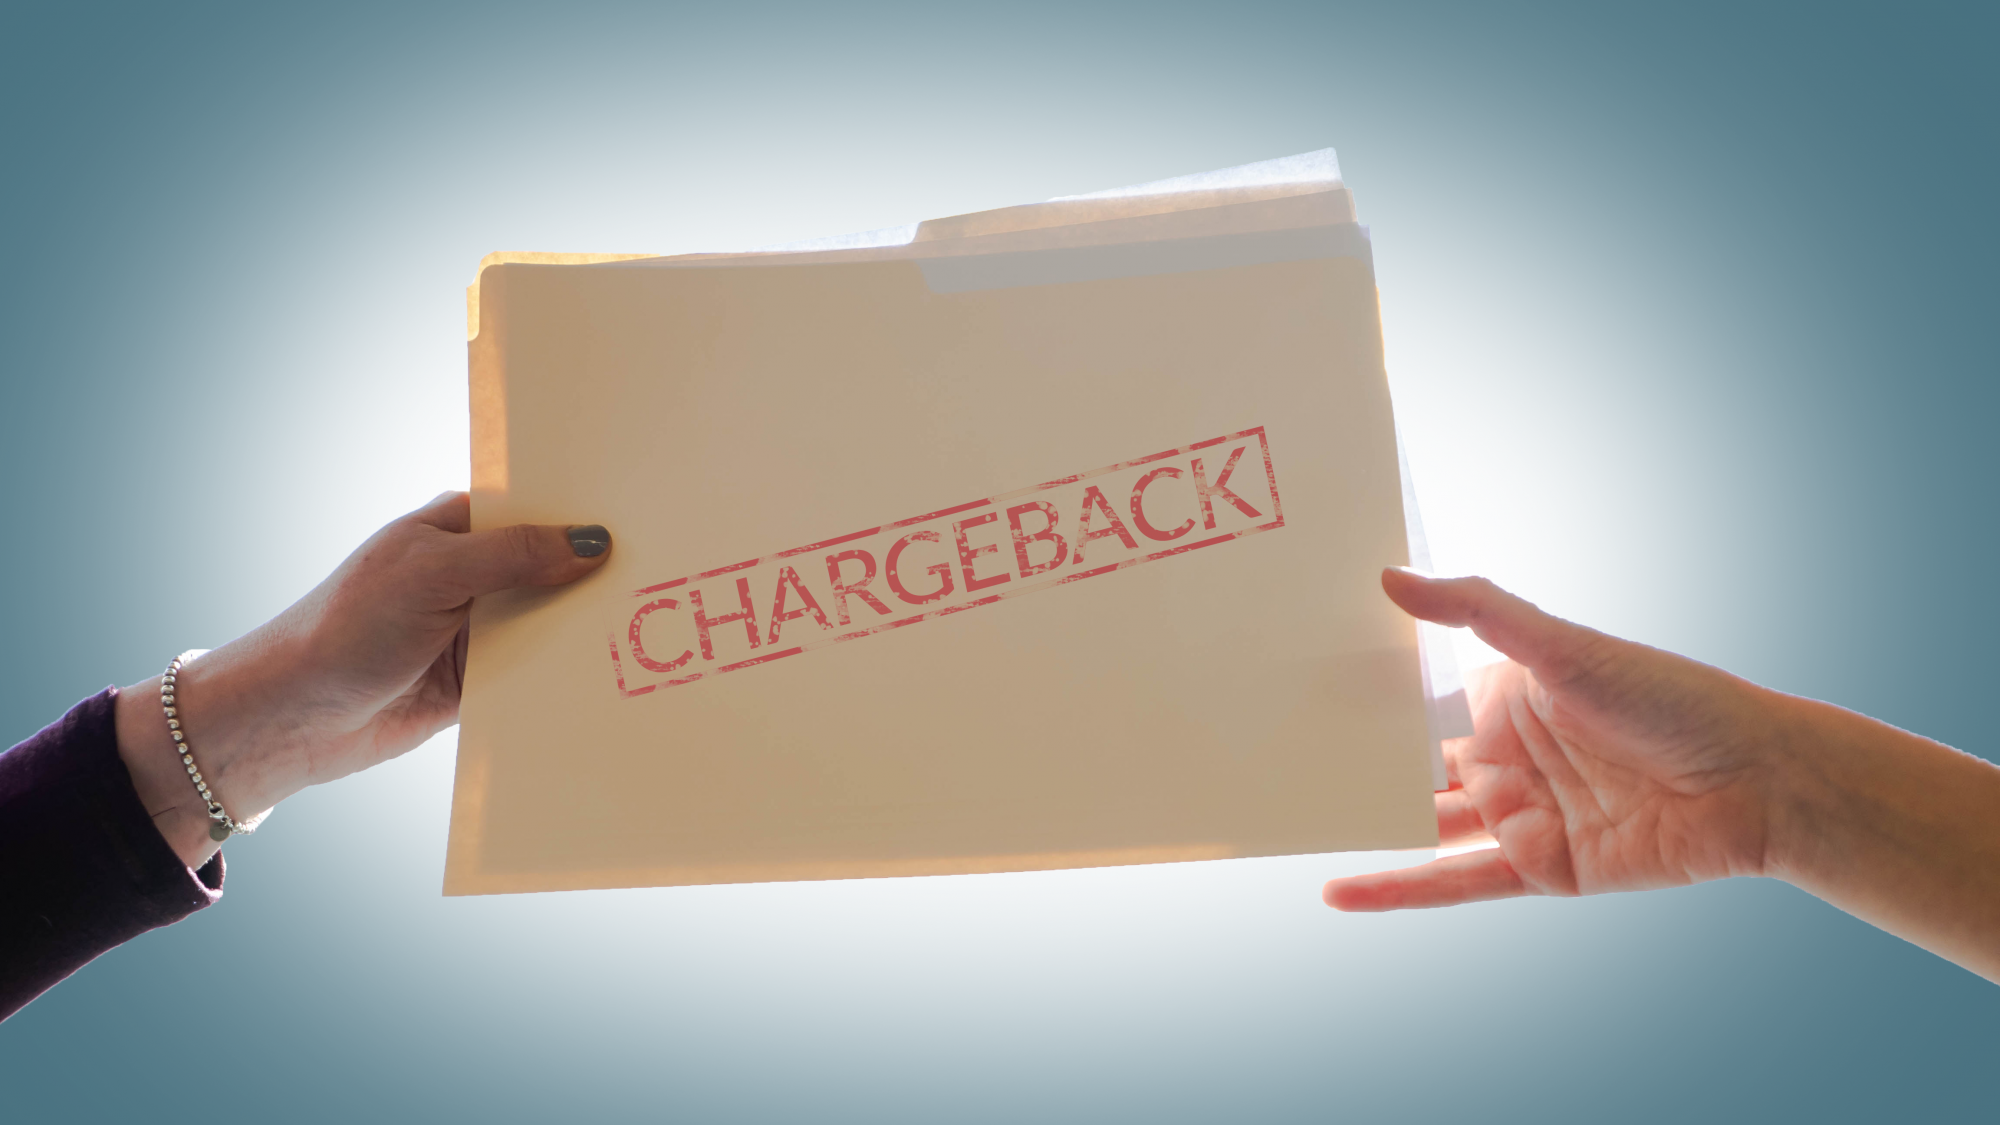 What Do I Do If My Business Gets a Chargeback?